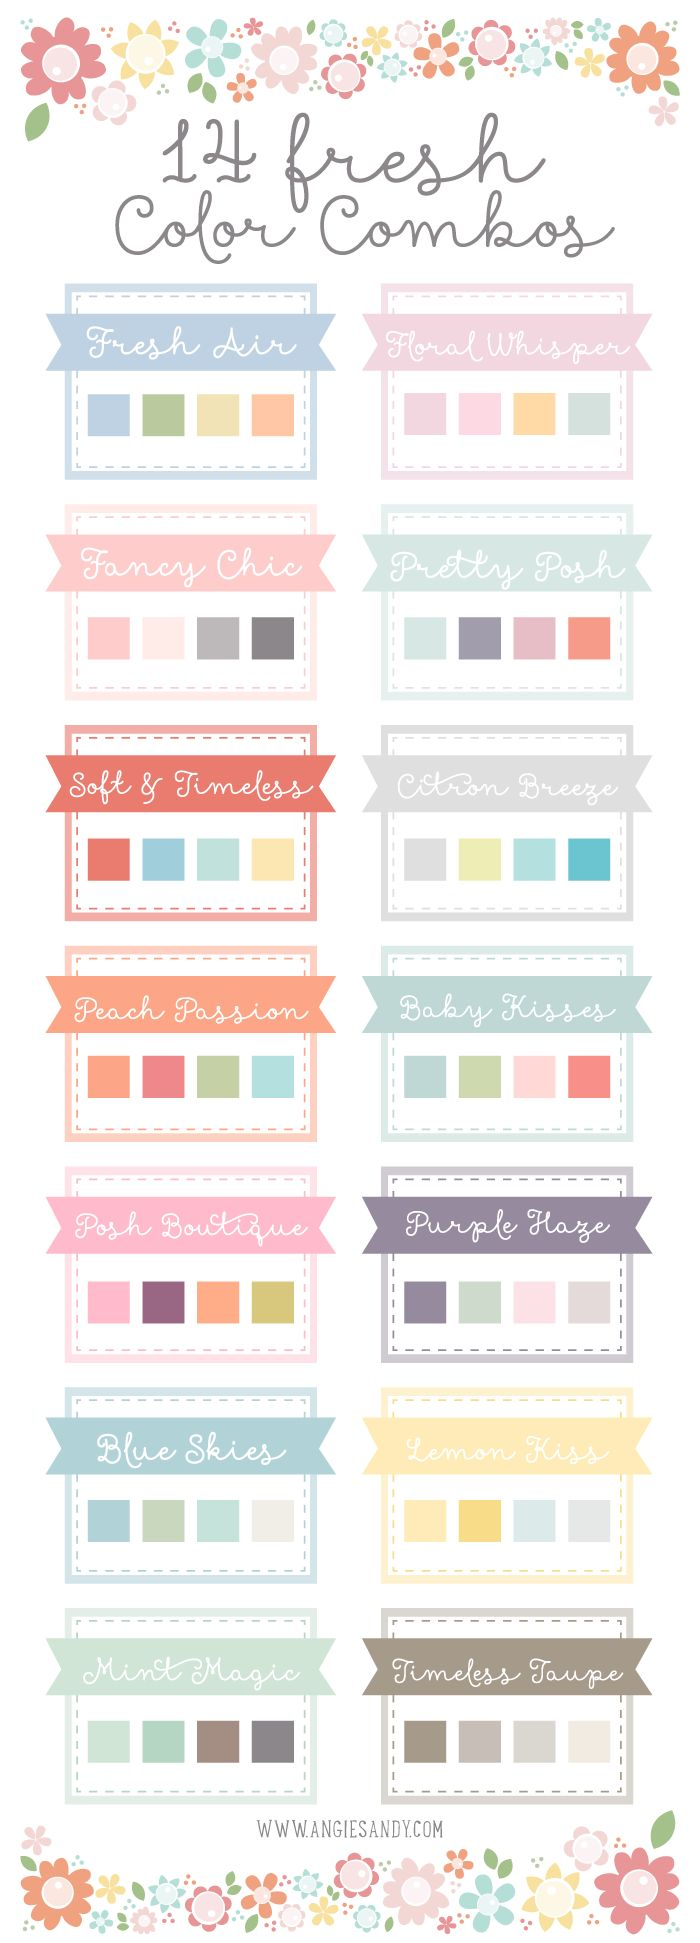 I thought I would do something new today, I wanted to create something  fresh for you still on my usual color palette model. I decided it would be  fun to feature a few color palettes in soft, spring colors for all your  design projects. You can download the ASE file here for all 14 palettes. I  used the lovely Showcase font on the headings, have I ever mentioned I love  that font!